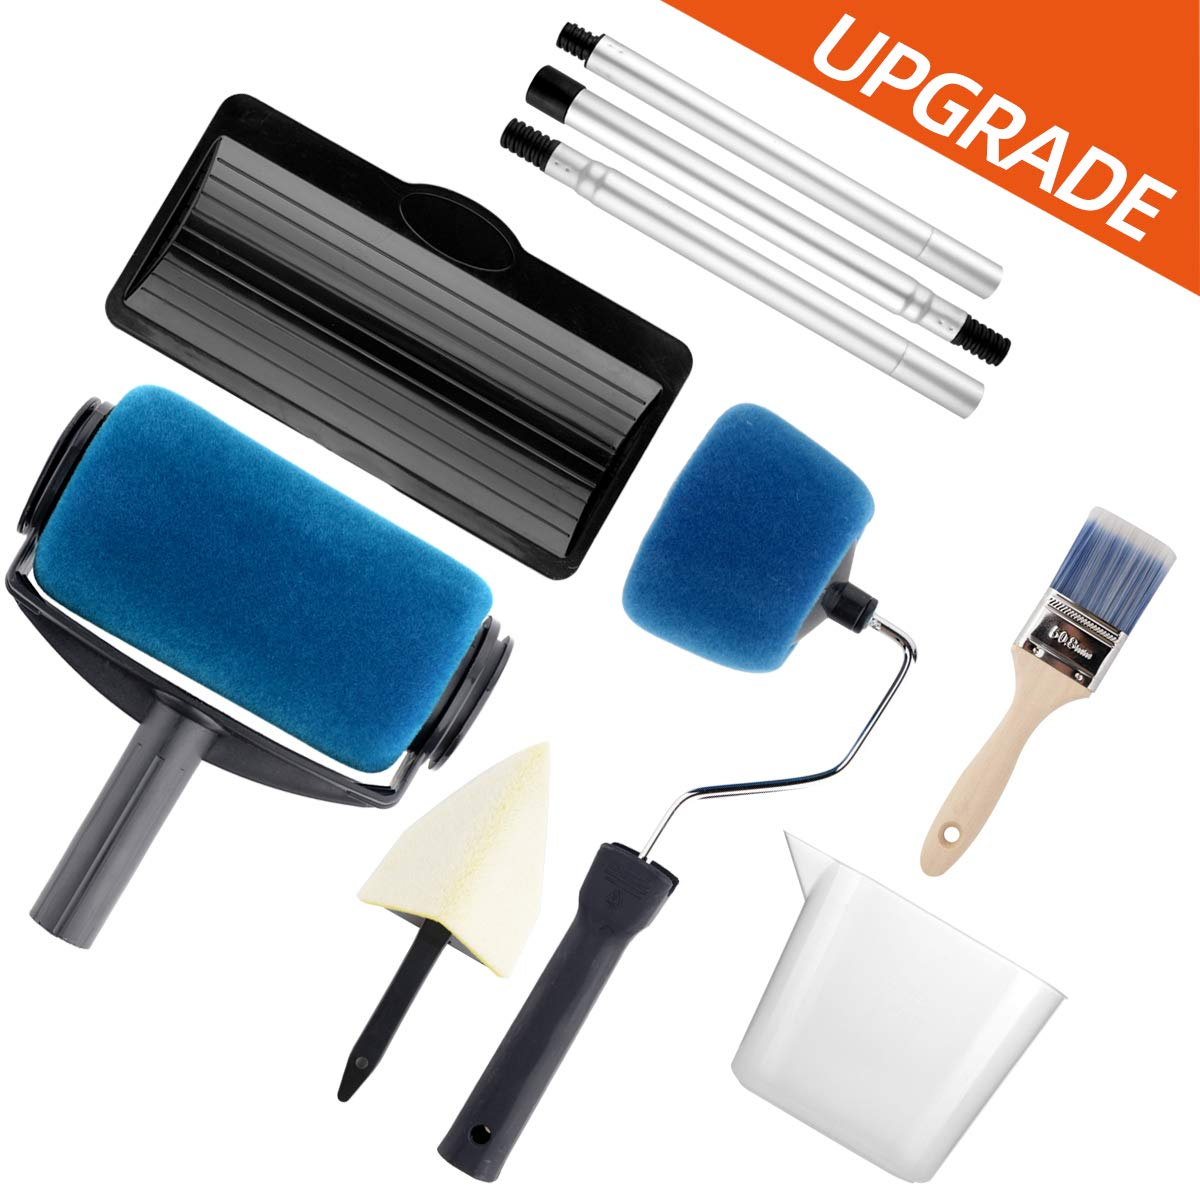 Paint Roller Set- Paint Brush, Paint Tray, Rollers Stick, Paint Edger, Paint Roller Pro, 9 Piece DIY Home Wall Decorate Runner Pro Painting Kit Tools by Nanja